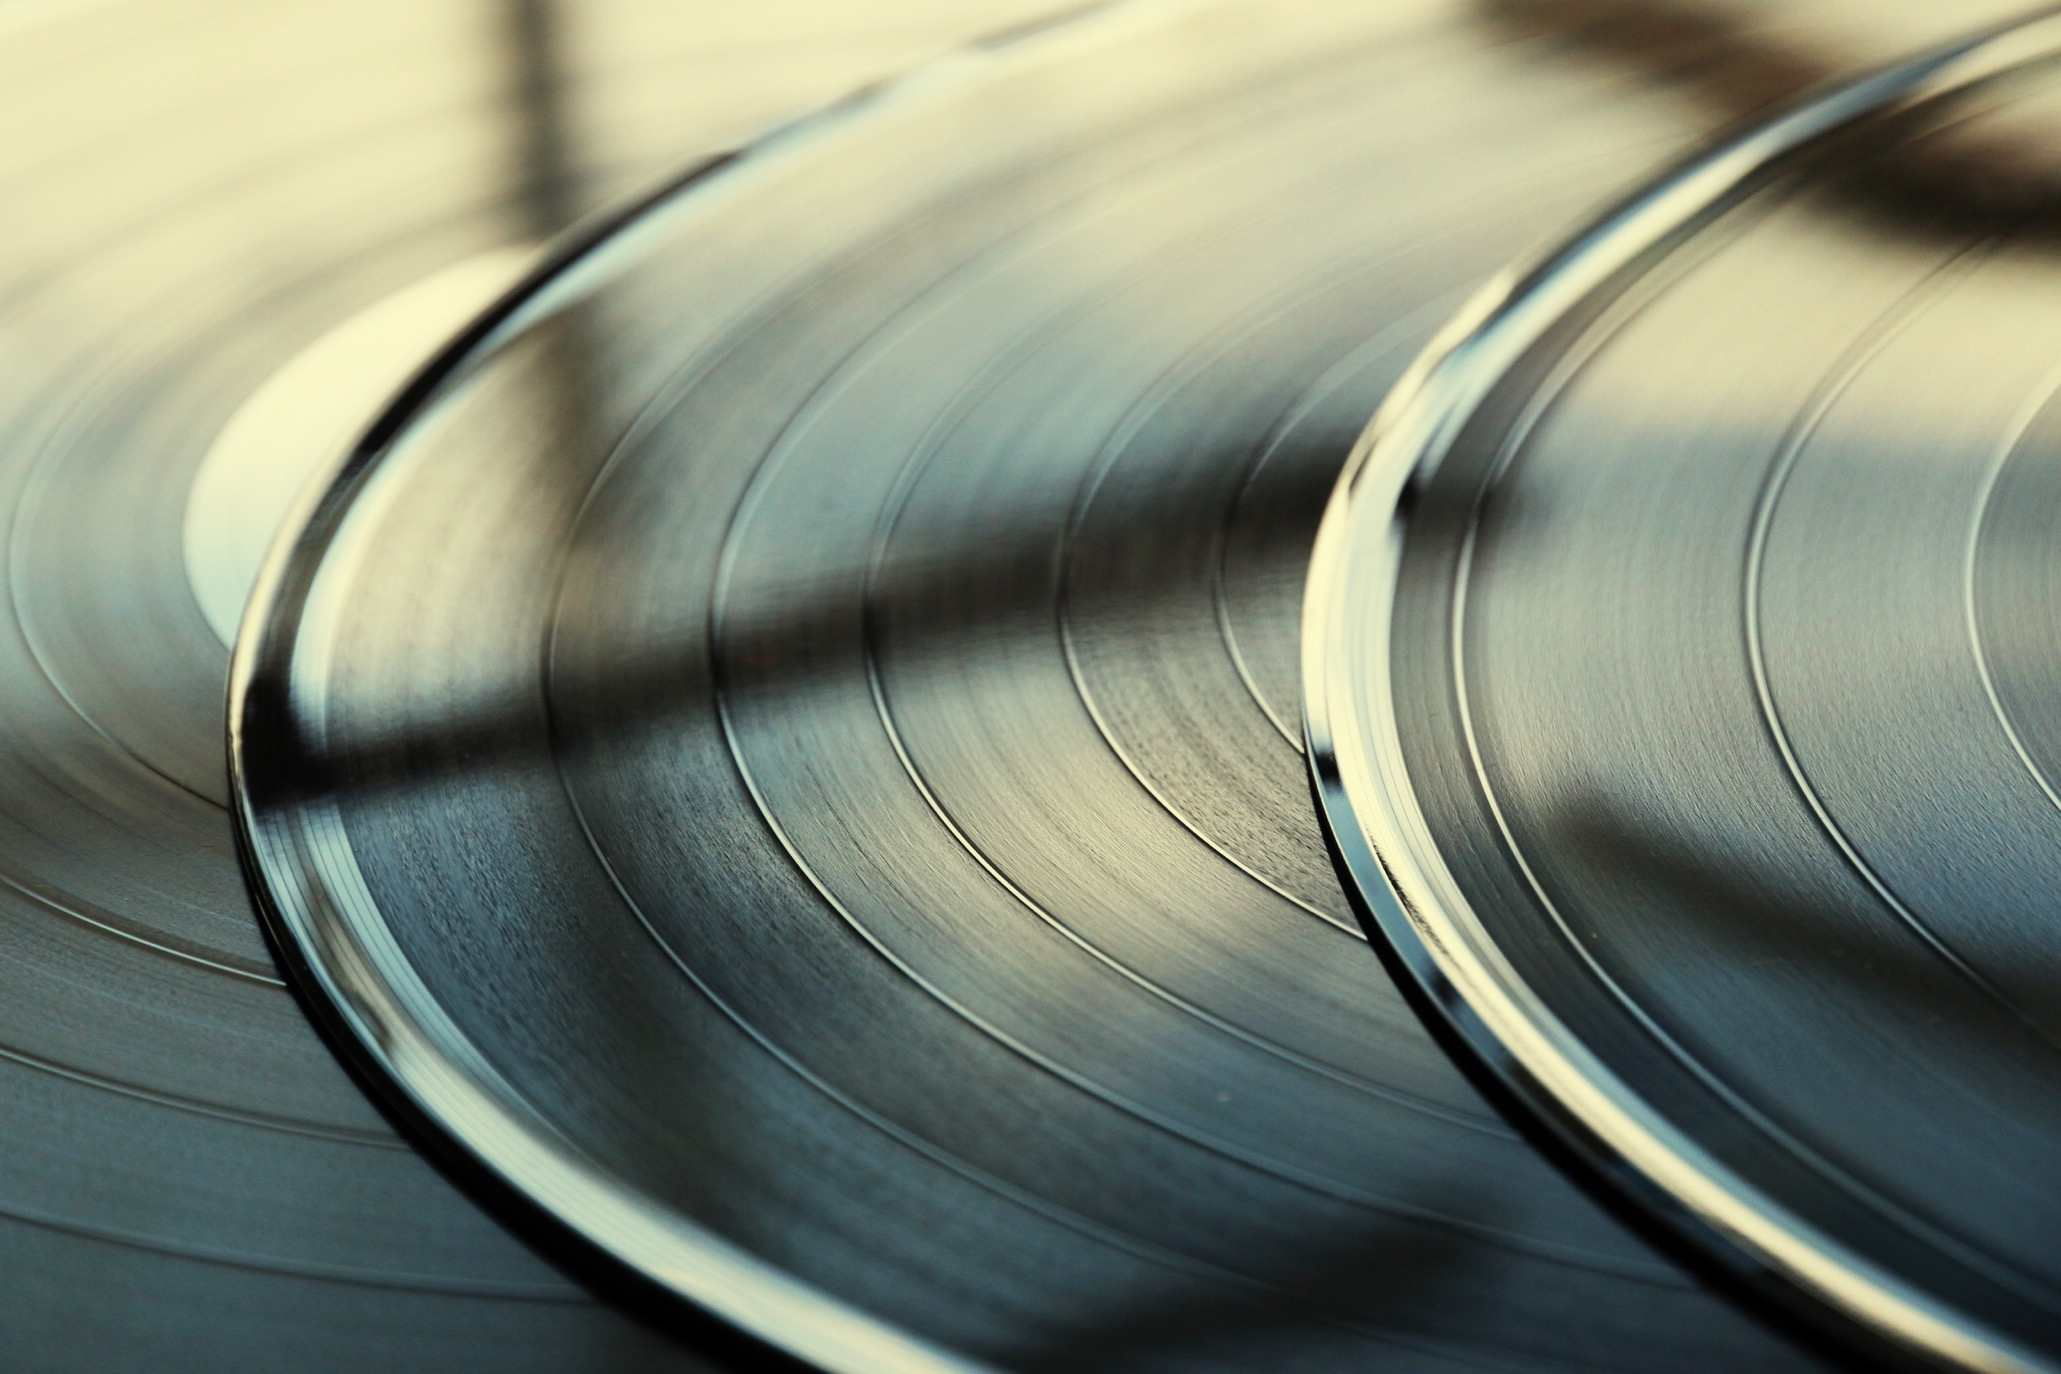 A close up of the vinyl records layered across each other